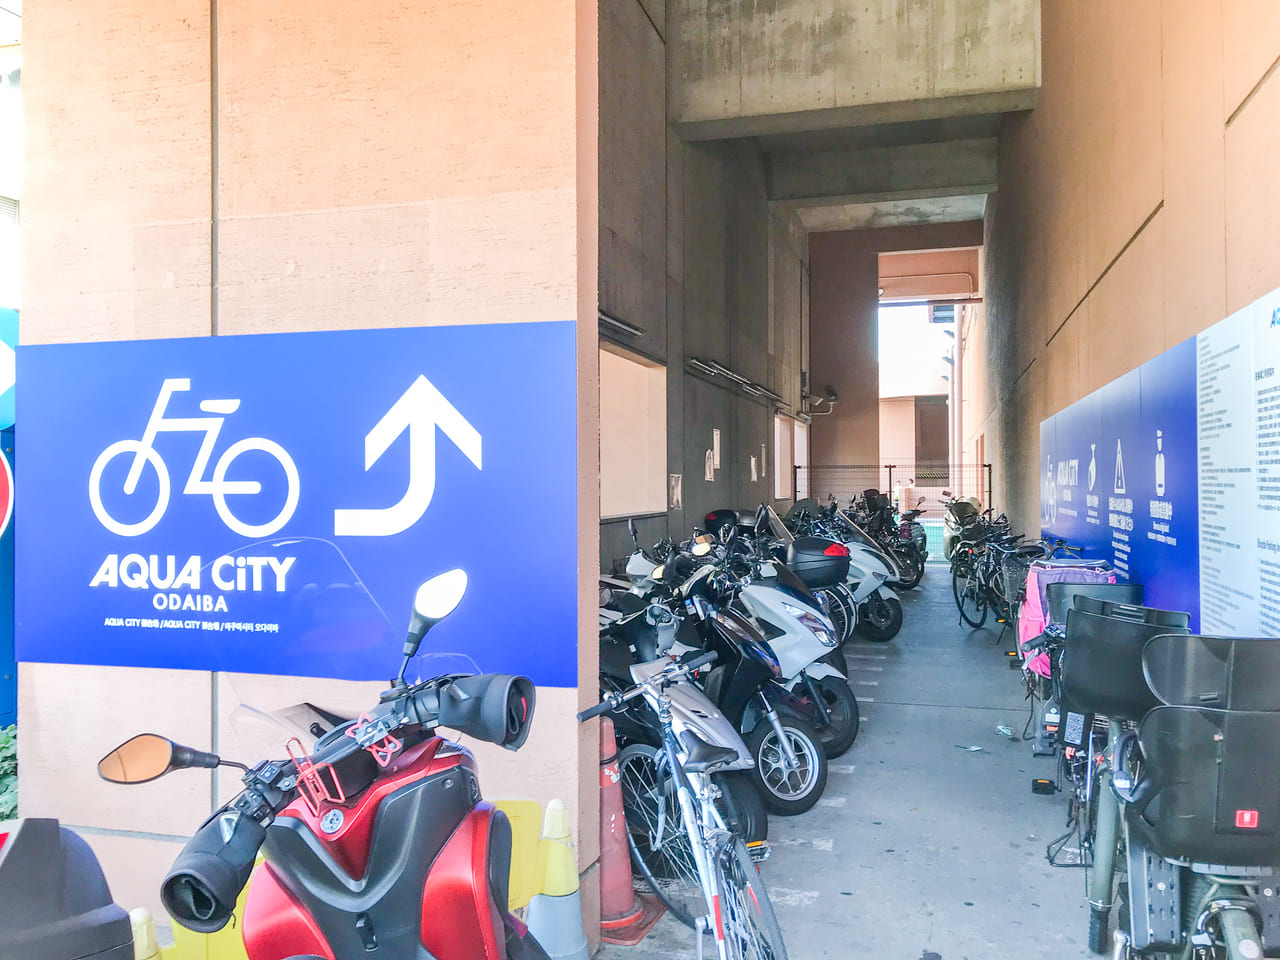 /1261-aqua-city-1f-motorcycle-bicycle-parking